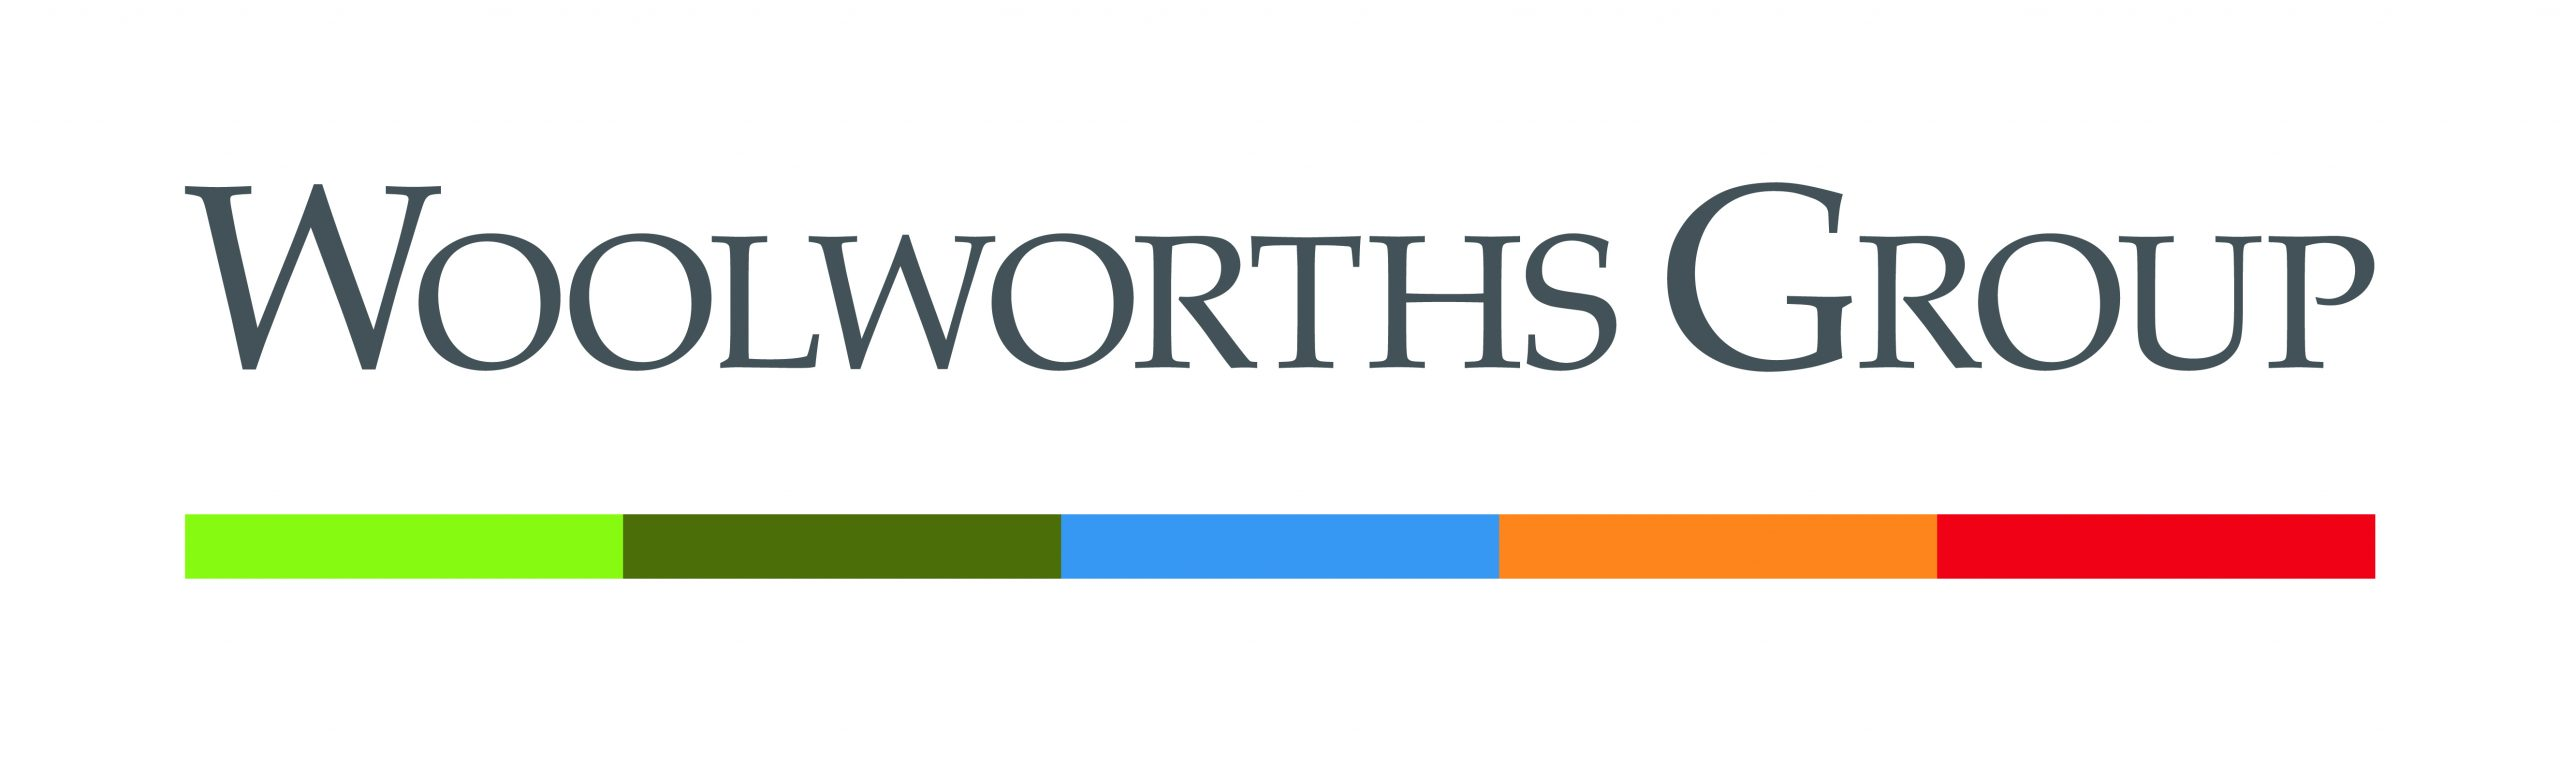 Woolworths Group RGB Positive Logo